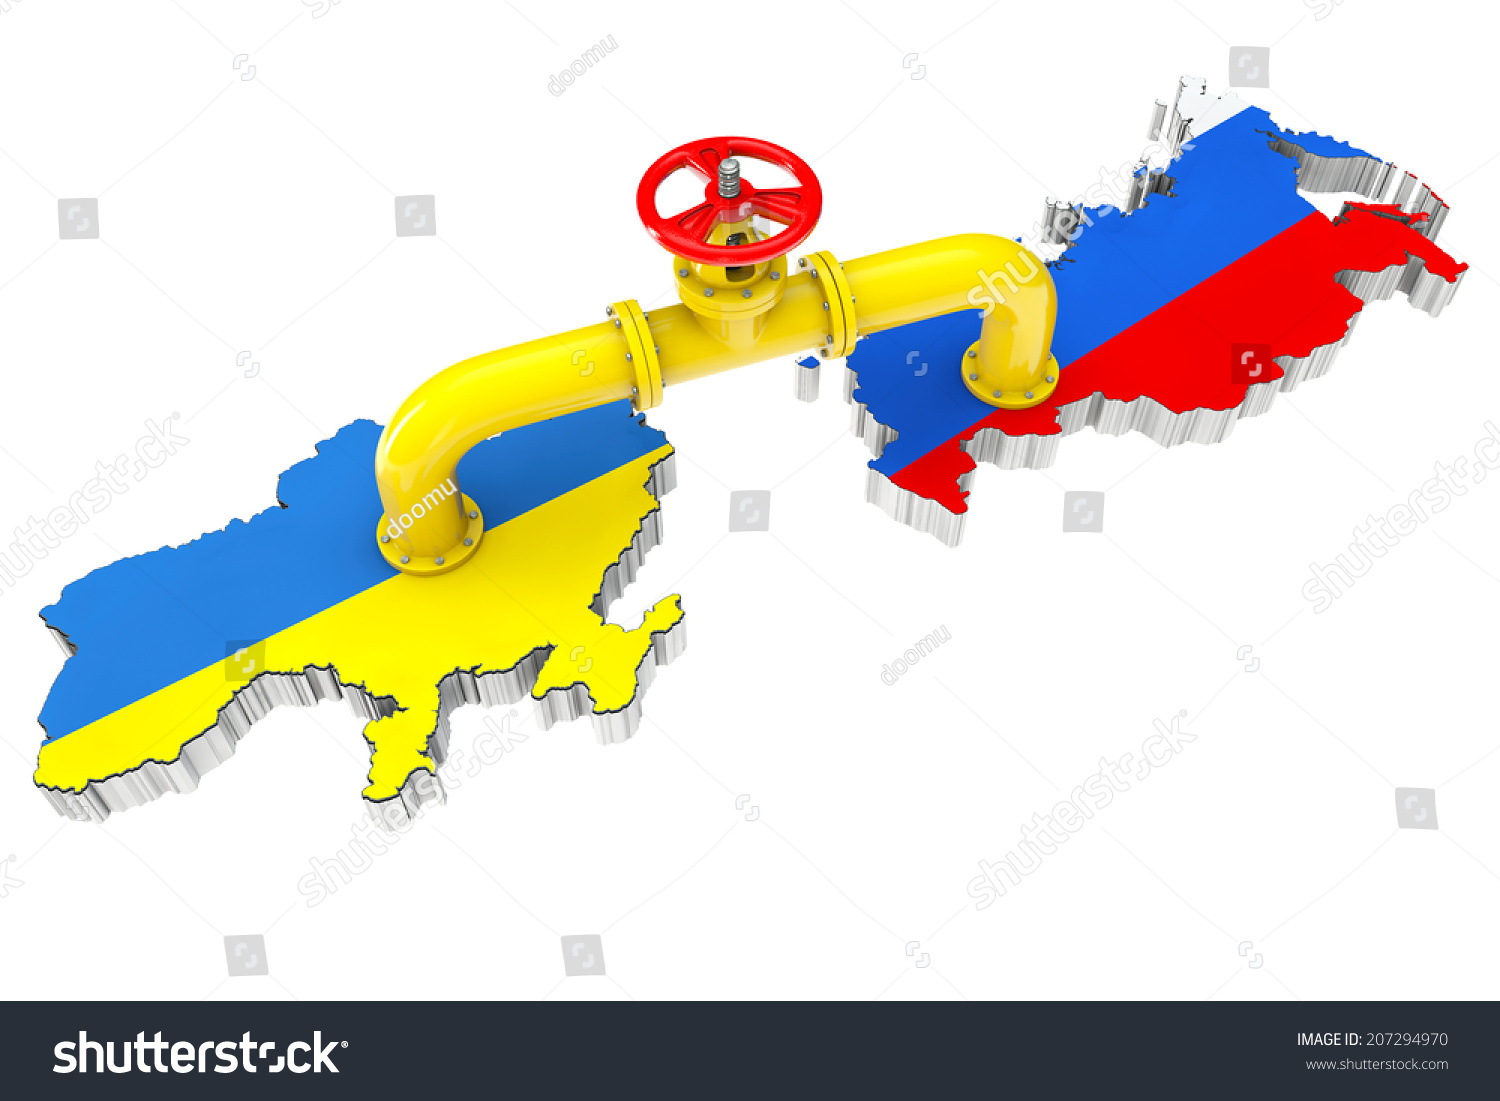 Gas Pipeline Over Russian Ukraine Maps Stock Illustration - Royalty on russia and baltic sea map, little russia map, russia and crimea, russia v ukraine, russia and caucasus map, russia and switzerland map, crimea russia map, russia map with cities and rivers, russia and byzantine empire map, russia and northern europe map, russia taking over ukraine, russia vs ukraine, russia and former soviet union map, russia and philippines map, russia on map of russian federation, russia and france map, russia before russian revolution map, russia invaded ukraine, russia and norway map,